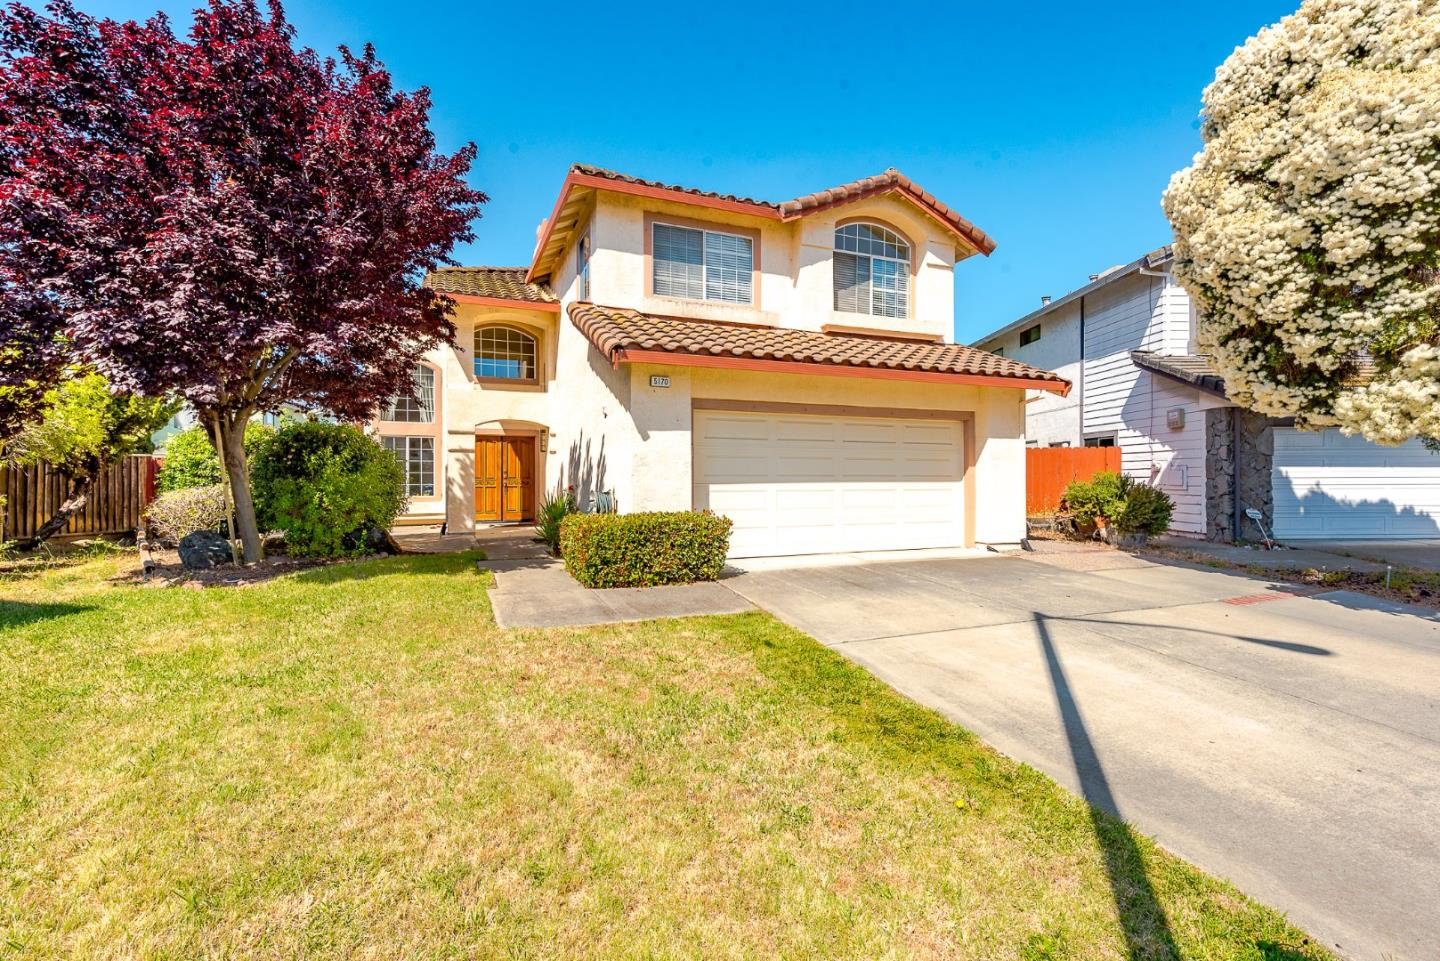 Single Family Home for Sale at 5170 Seaside Court Union City, California 94587 United States